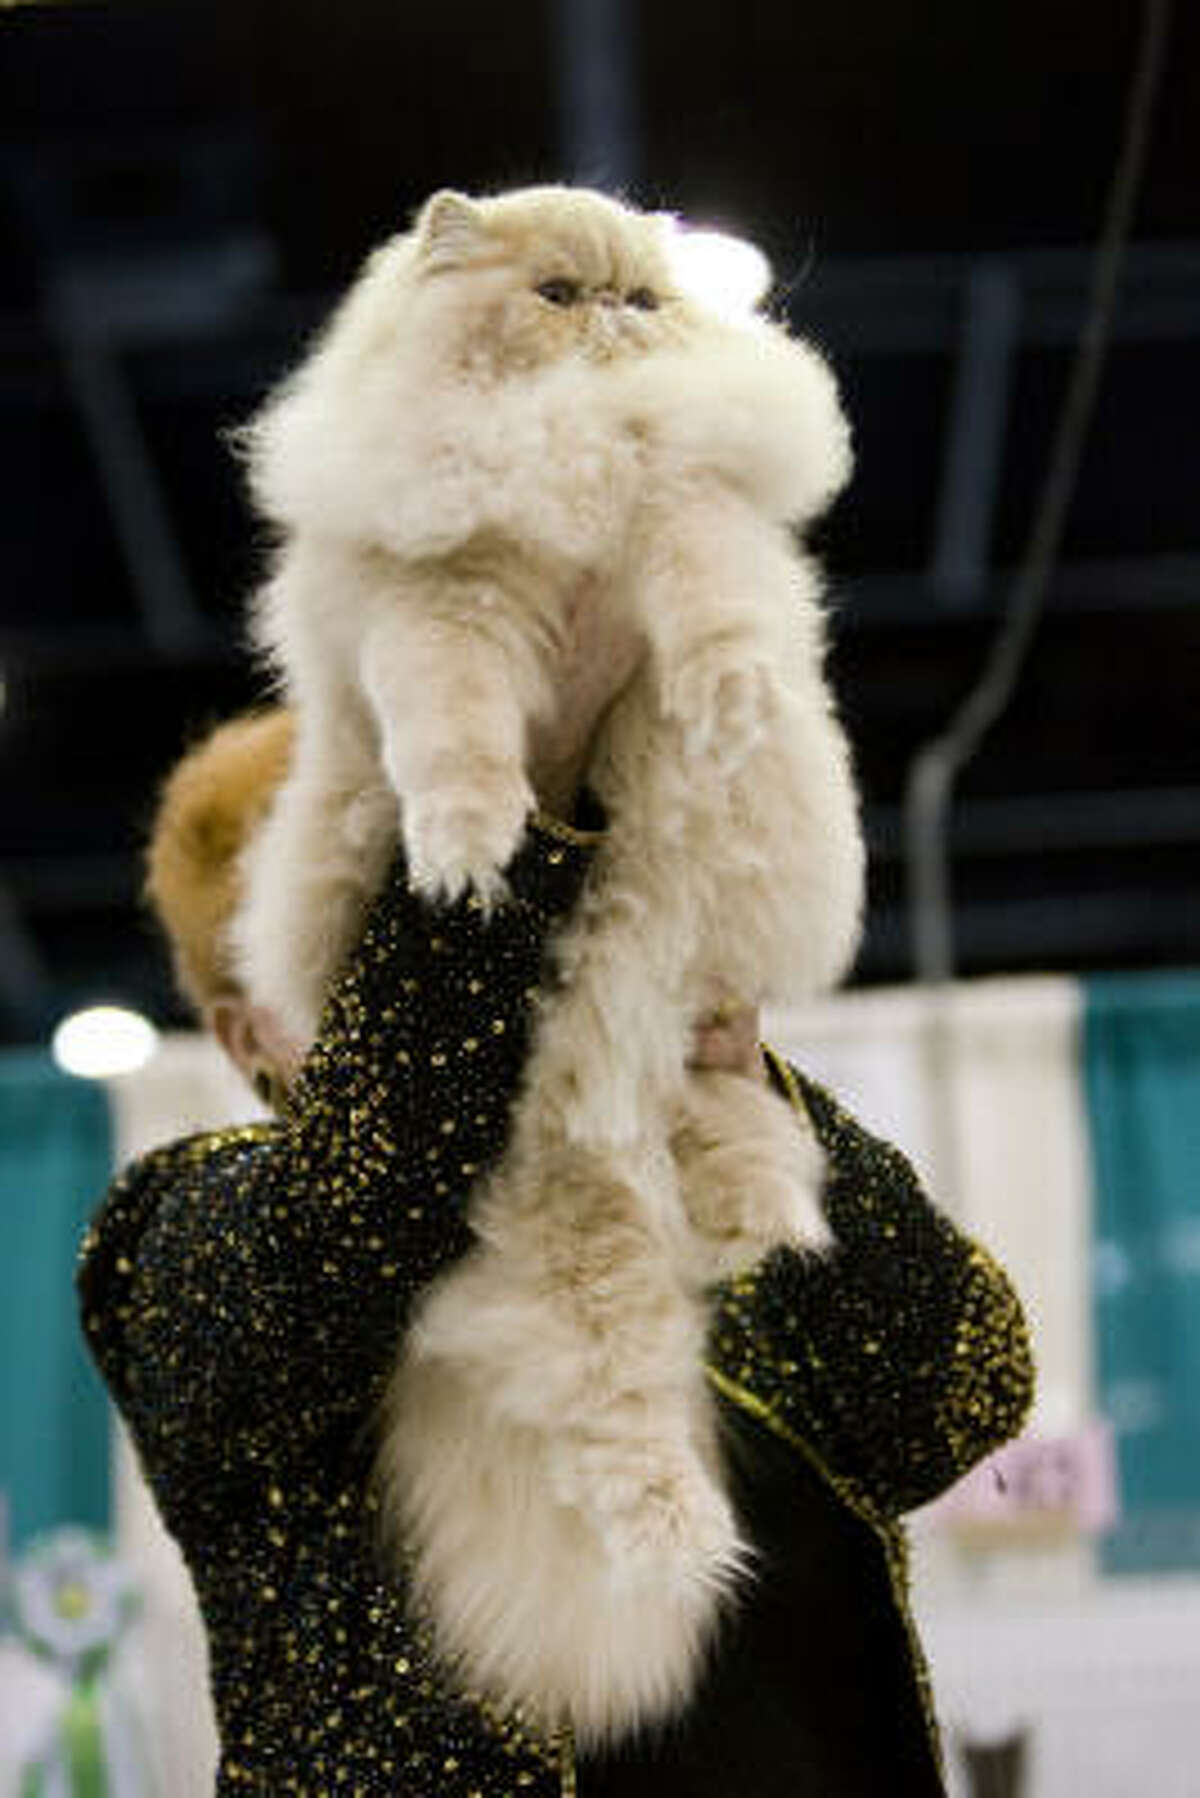 Judge Kim Everett-Hirsch holds up a Persian that won one of the best of show awards for kittens at Houston's 57th Annual Charity Cat Show.